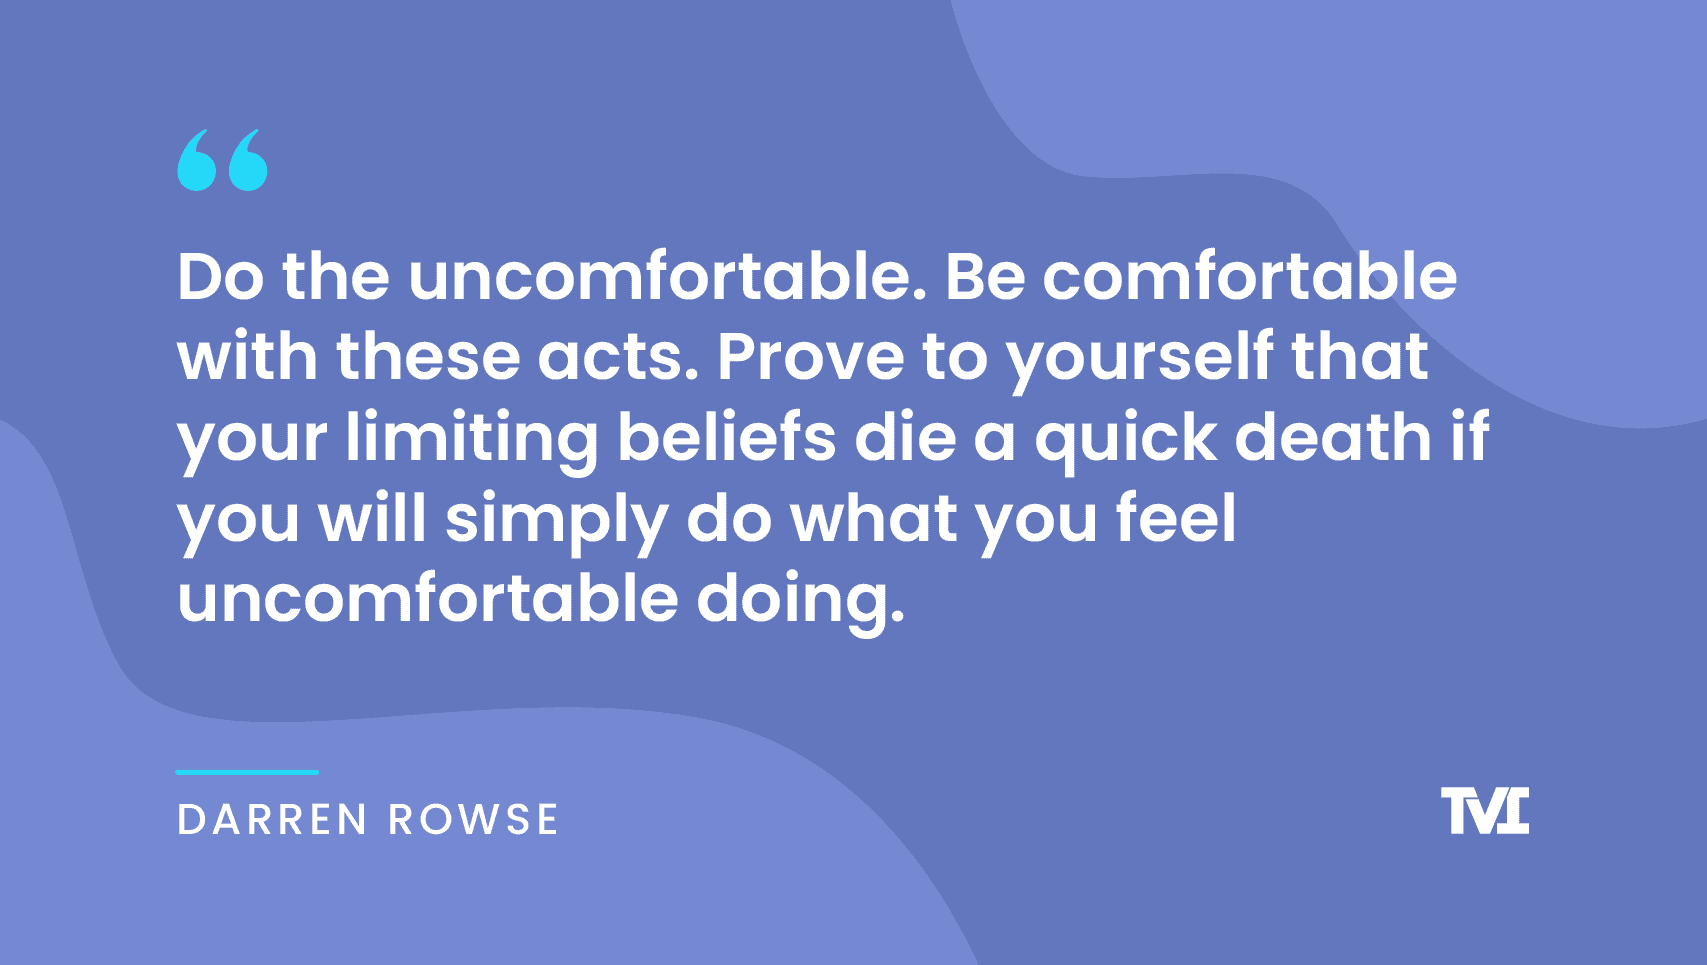 """""""Do the uncomfortable. Become comfortable with these acts. Prove to yourself that your limiting beliefs die a quick death if you will simply do what you feel uncomfortable doing."""" ―Darren Rowse"""